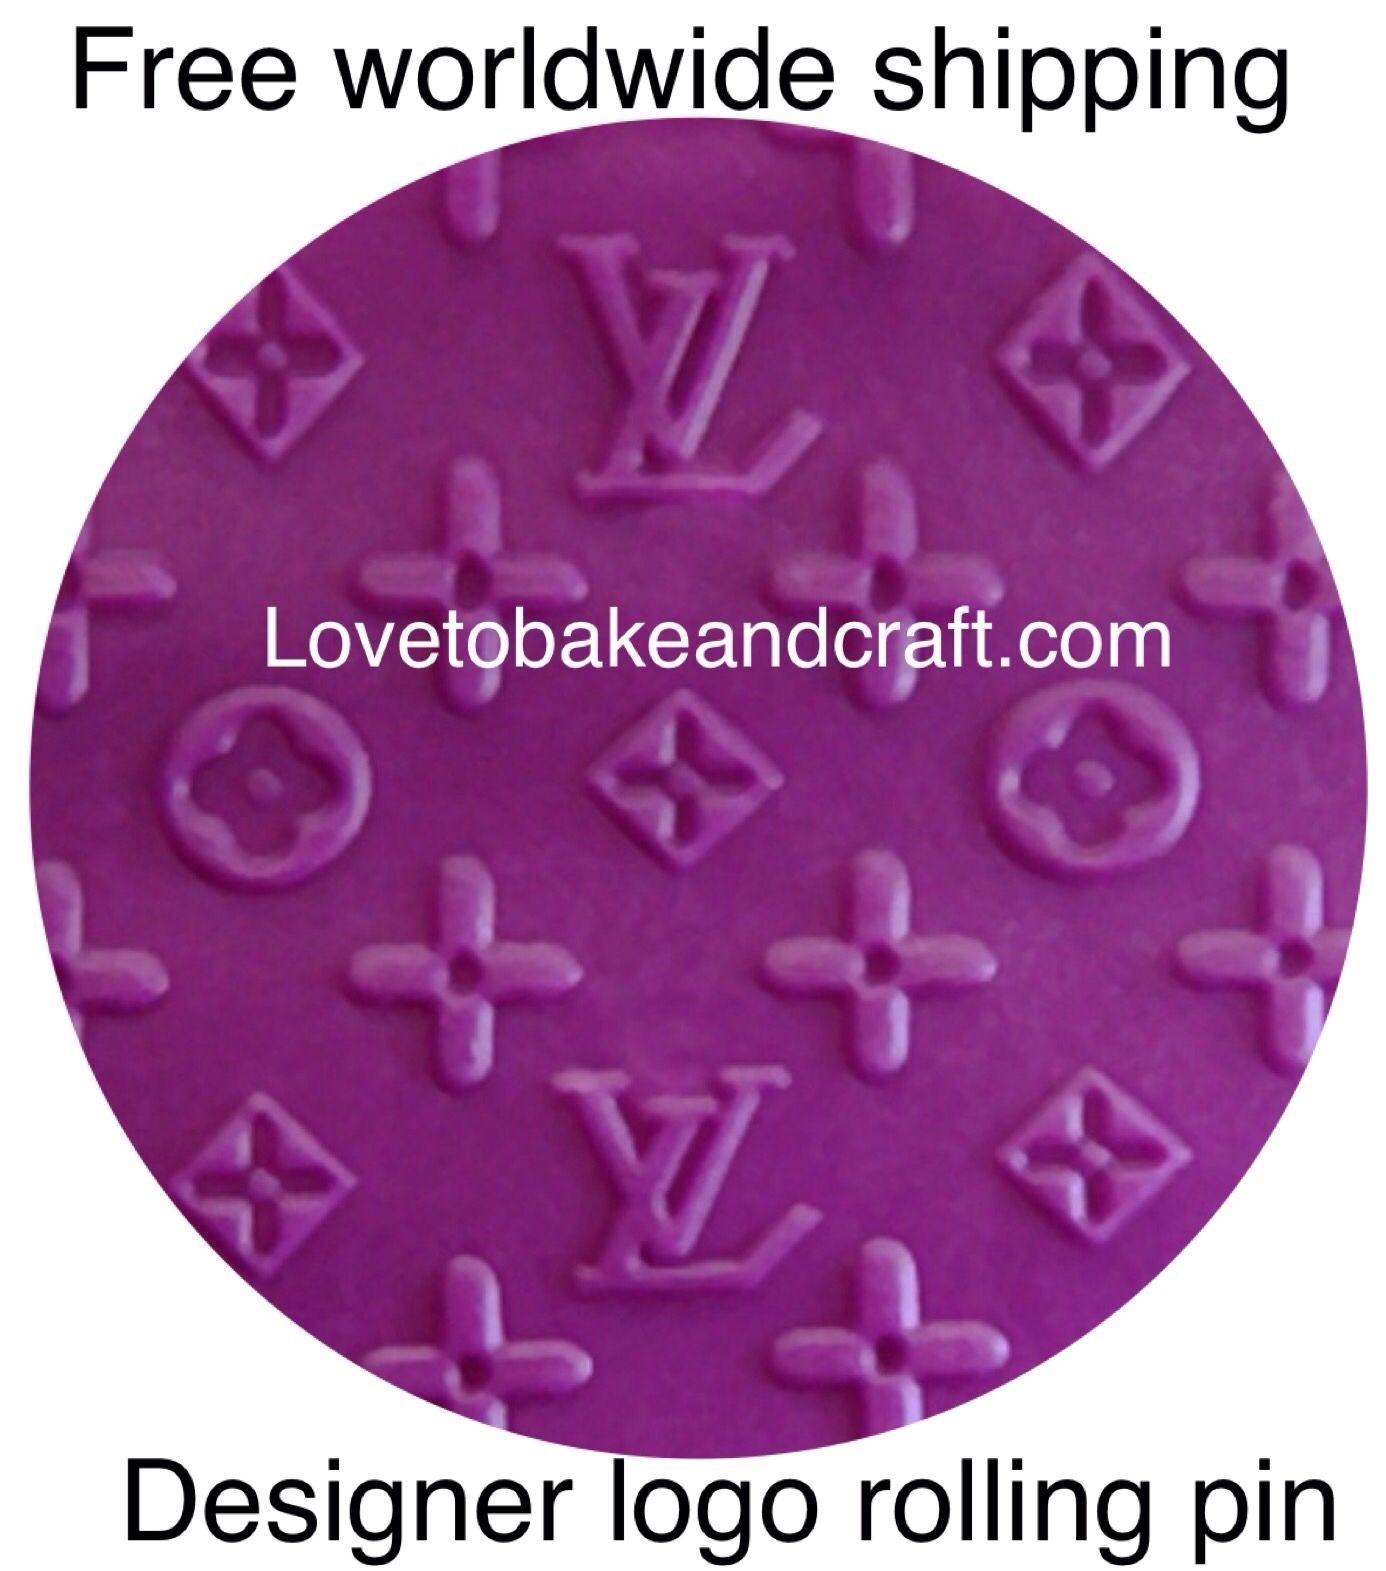 ed7ebeaa245a Large LV rolling pin. Louis Vuitton cake LV Logo . Louis Vuitton cake .  Free shipping